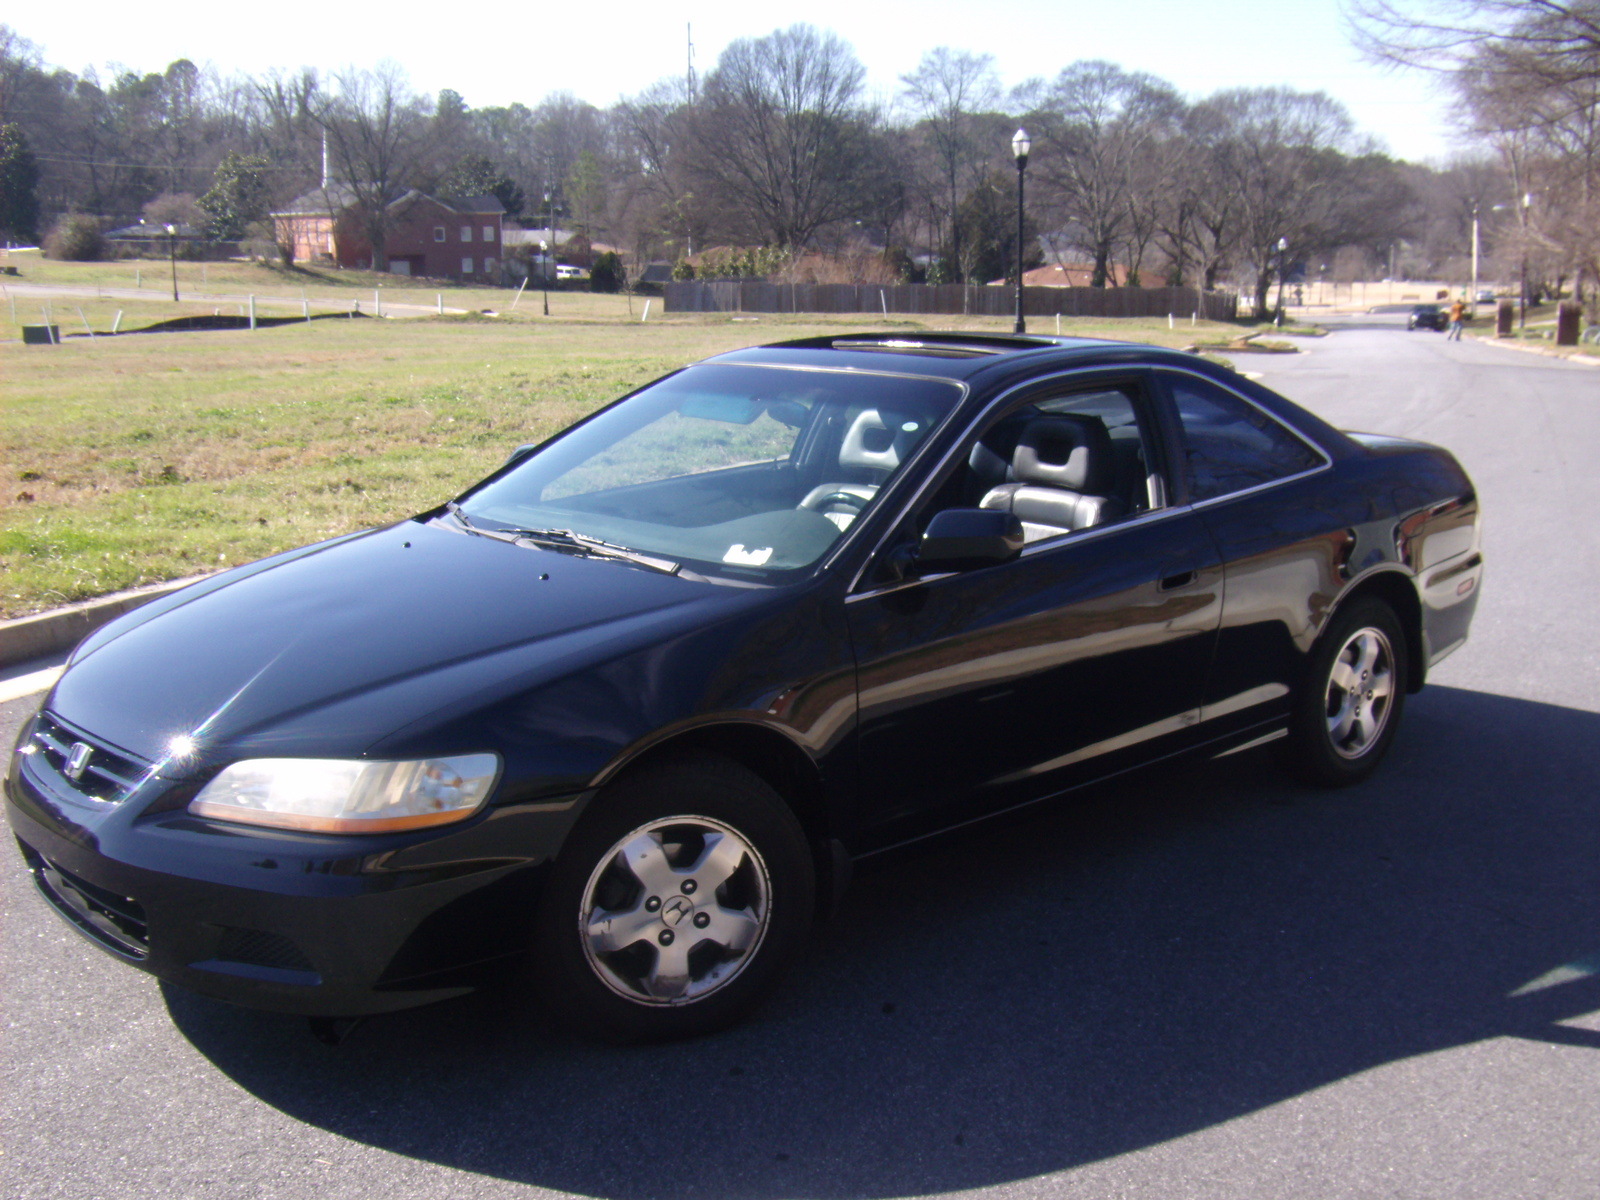 Picture of 2002 Honda Accord EX w/ Leather Coupe, exterior